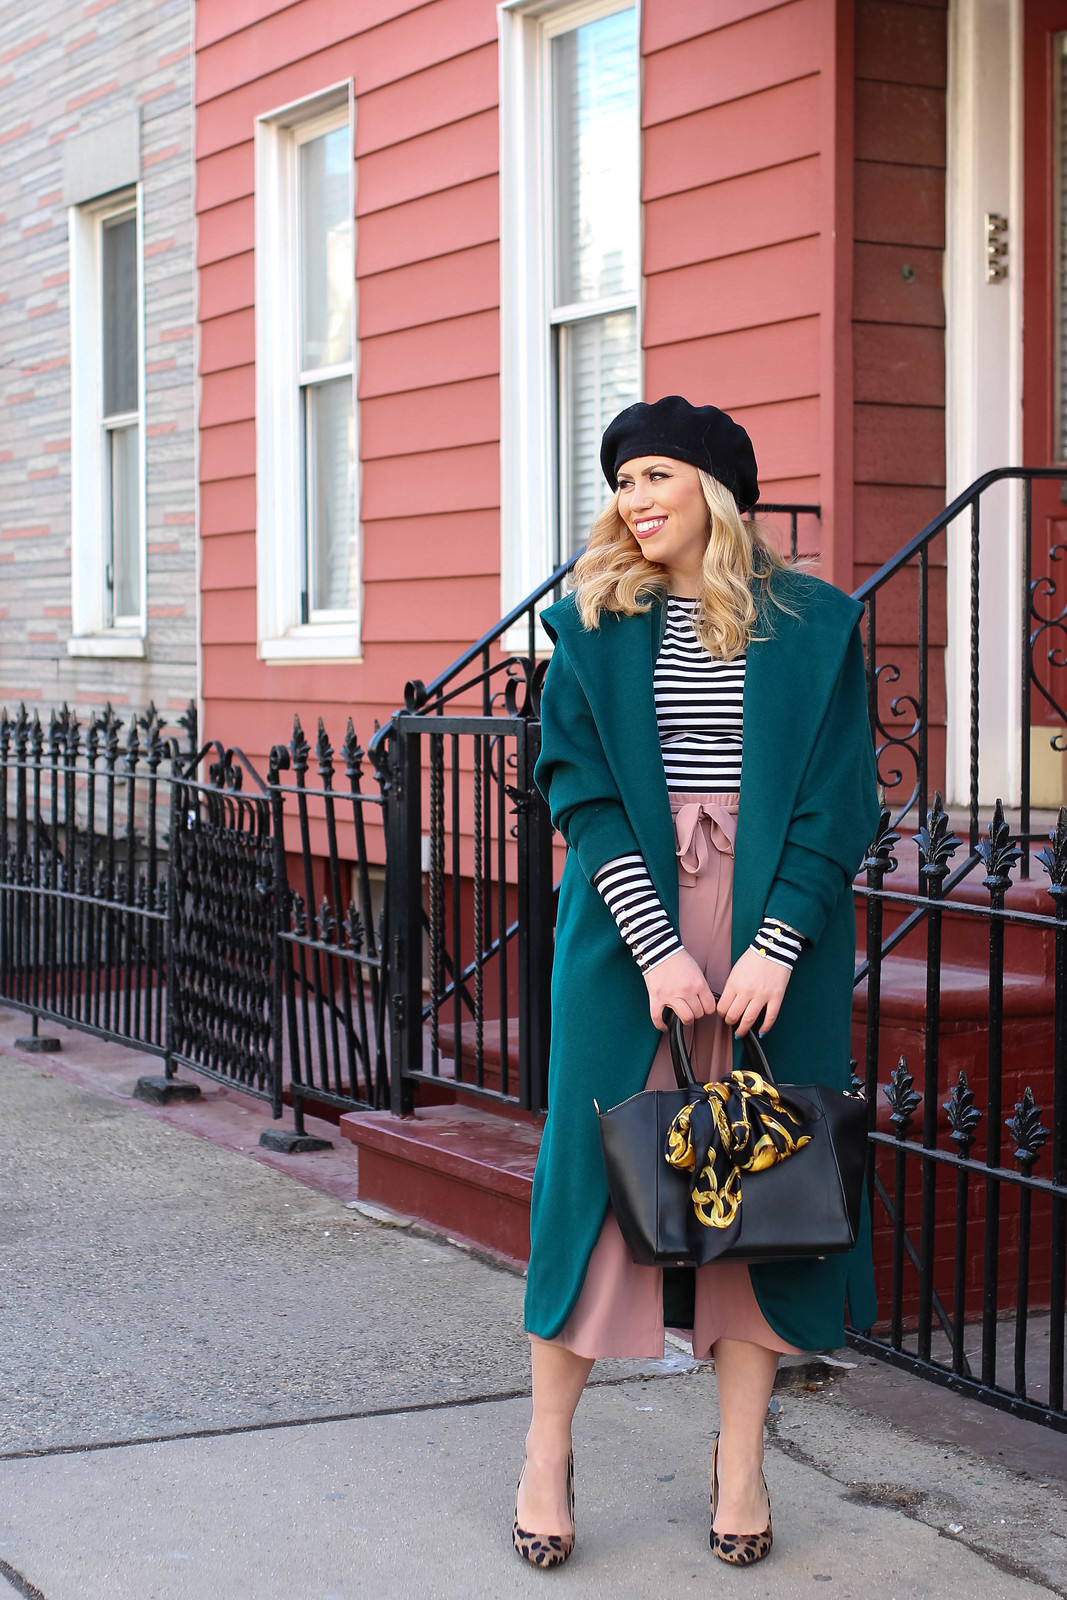 Winter 2018 Fashion Trends Black Beret Vintage Emerald Coat Striped Shirt Pink Culottes Outfit Inspiration